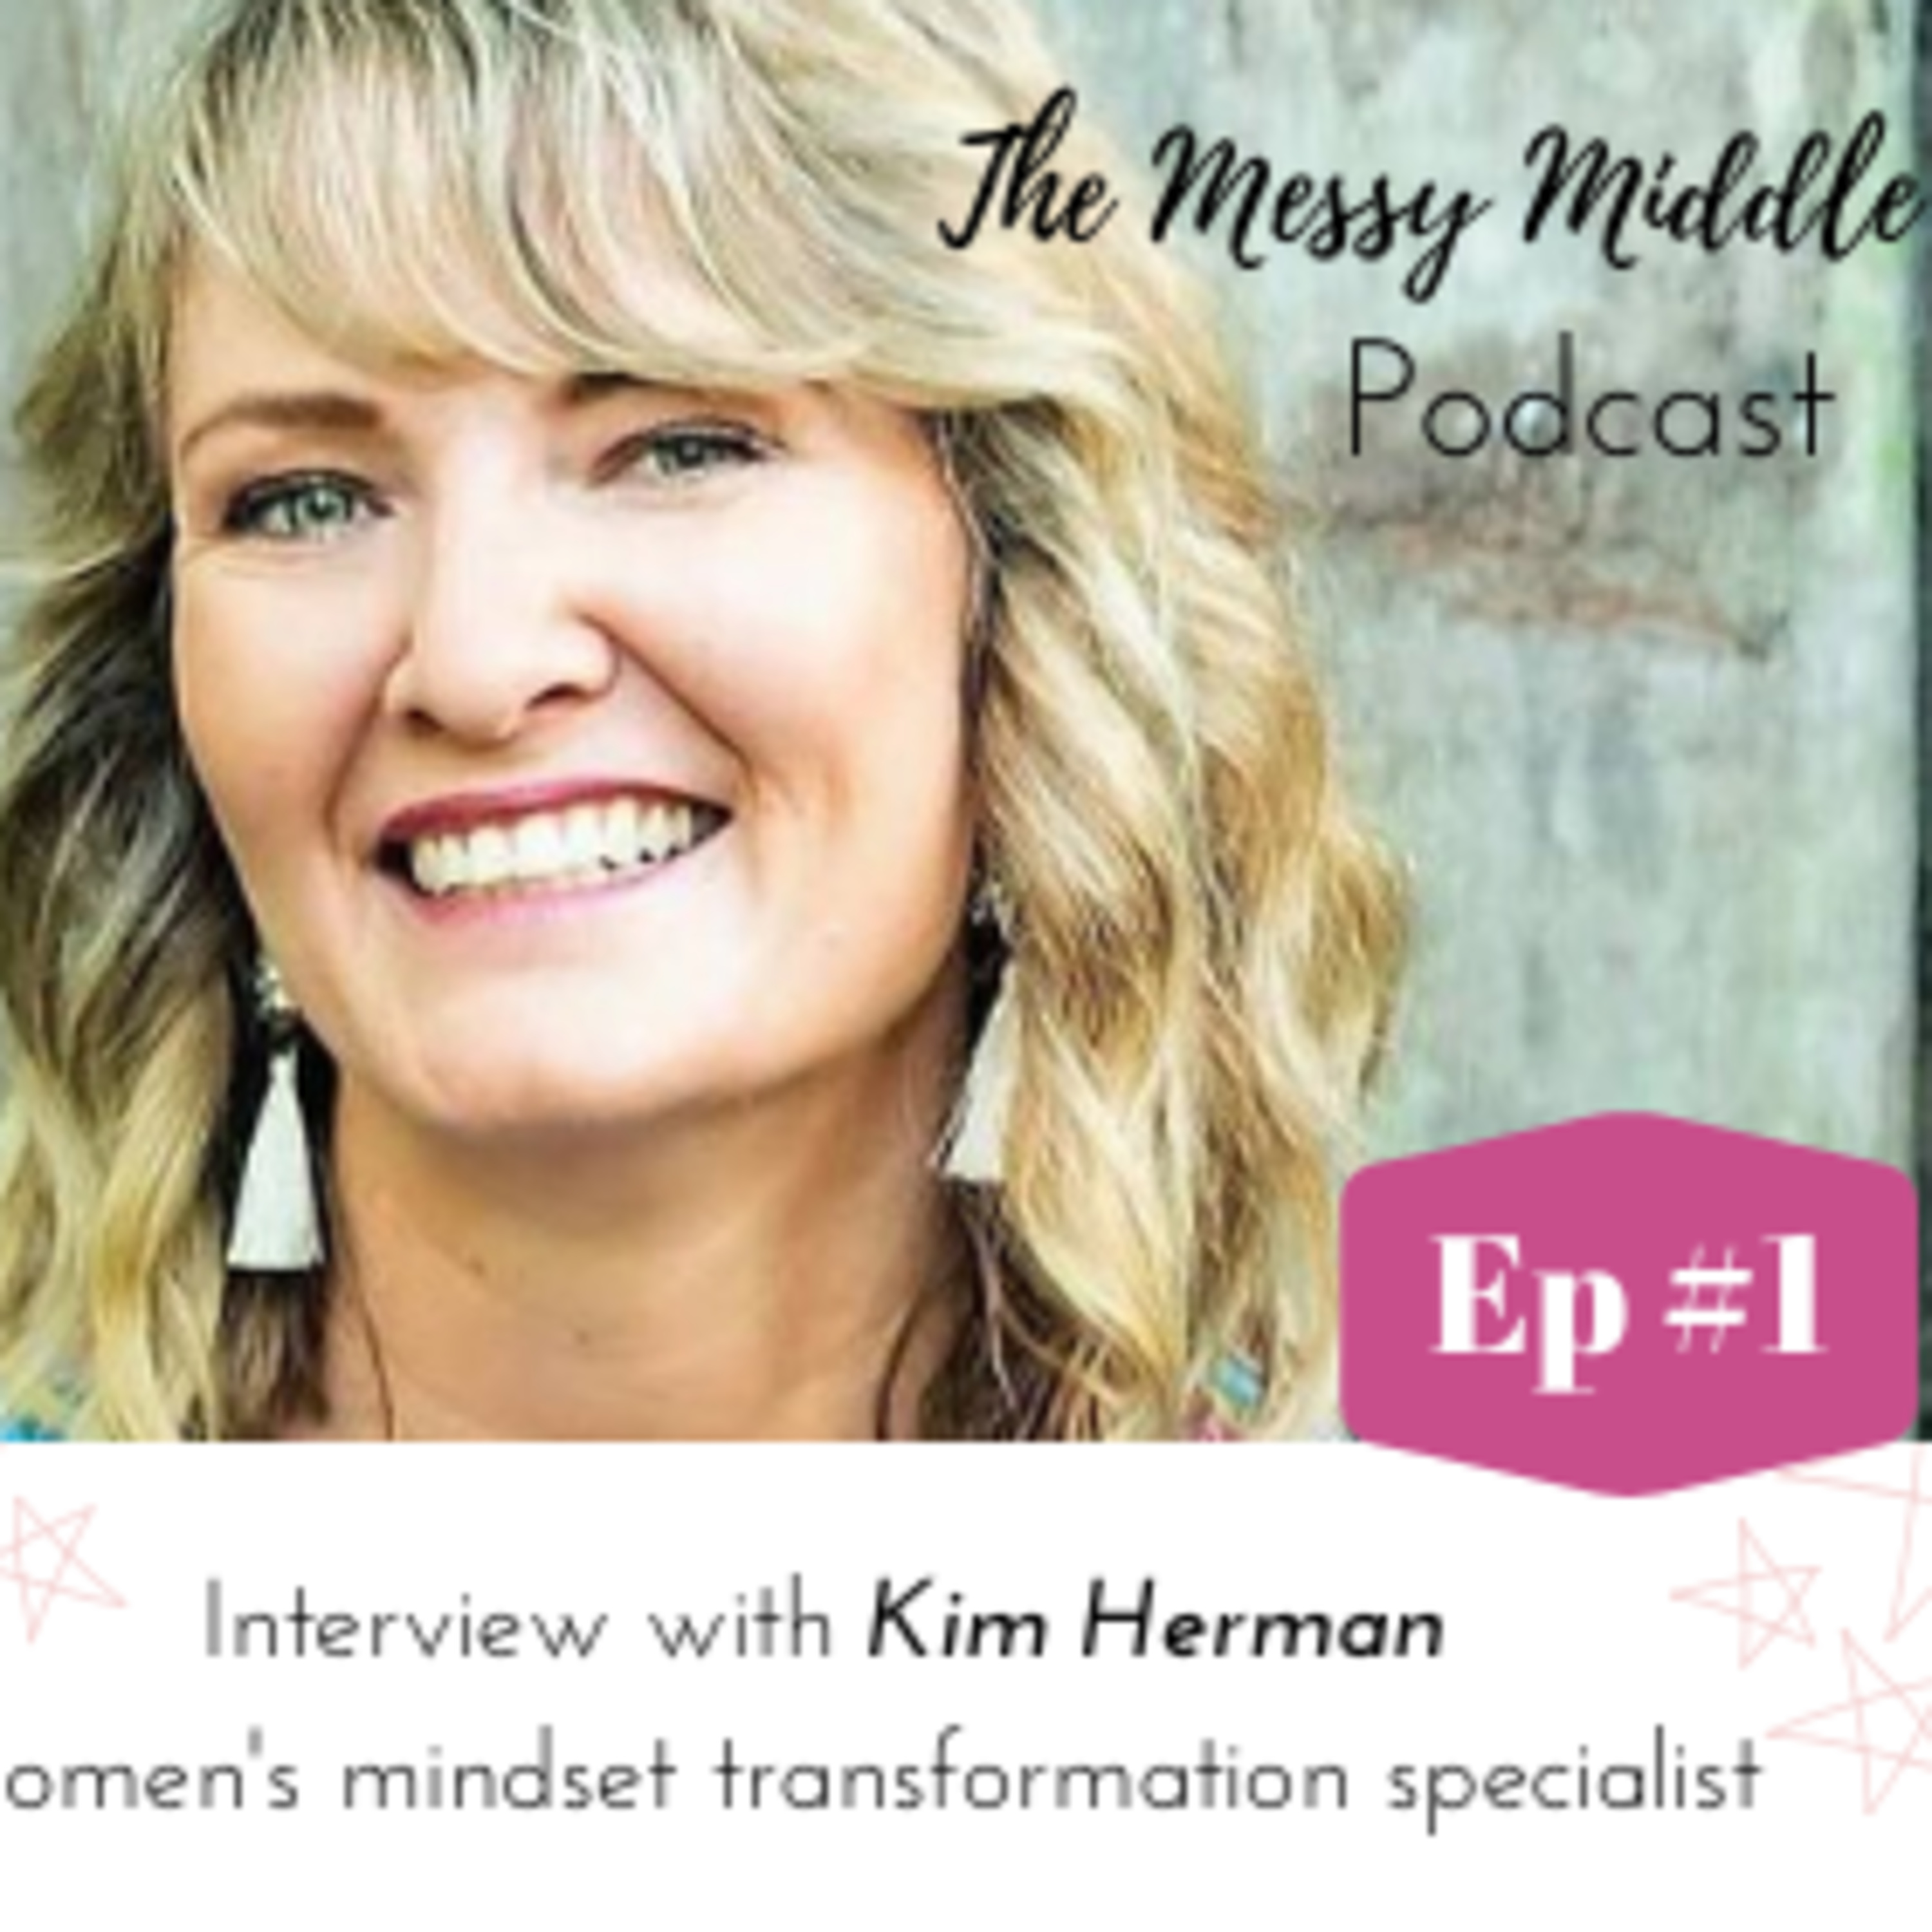 #1 Interview with Kim Herman